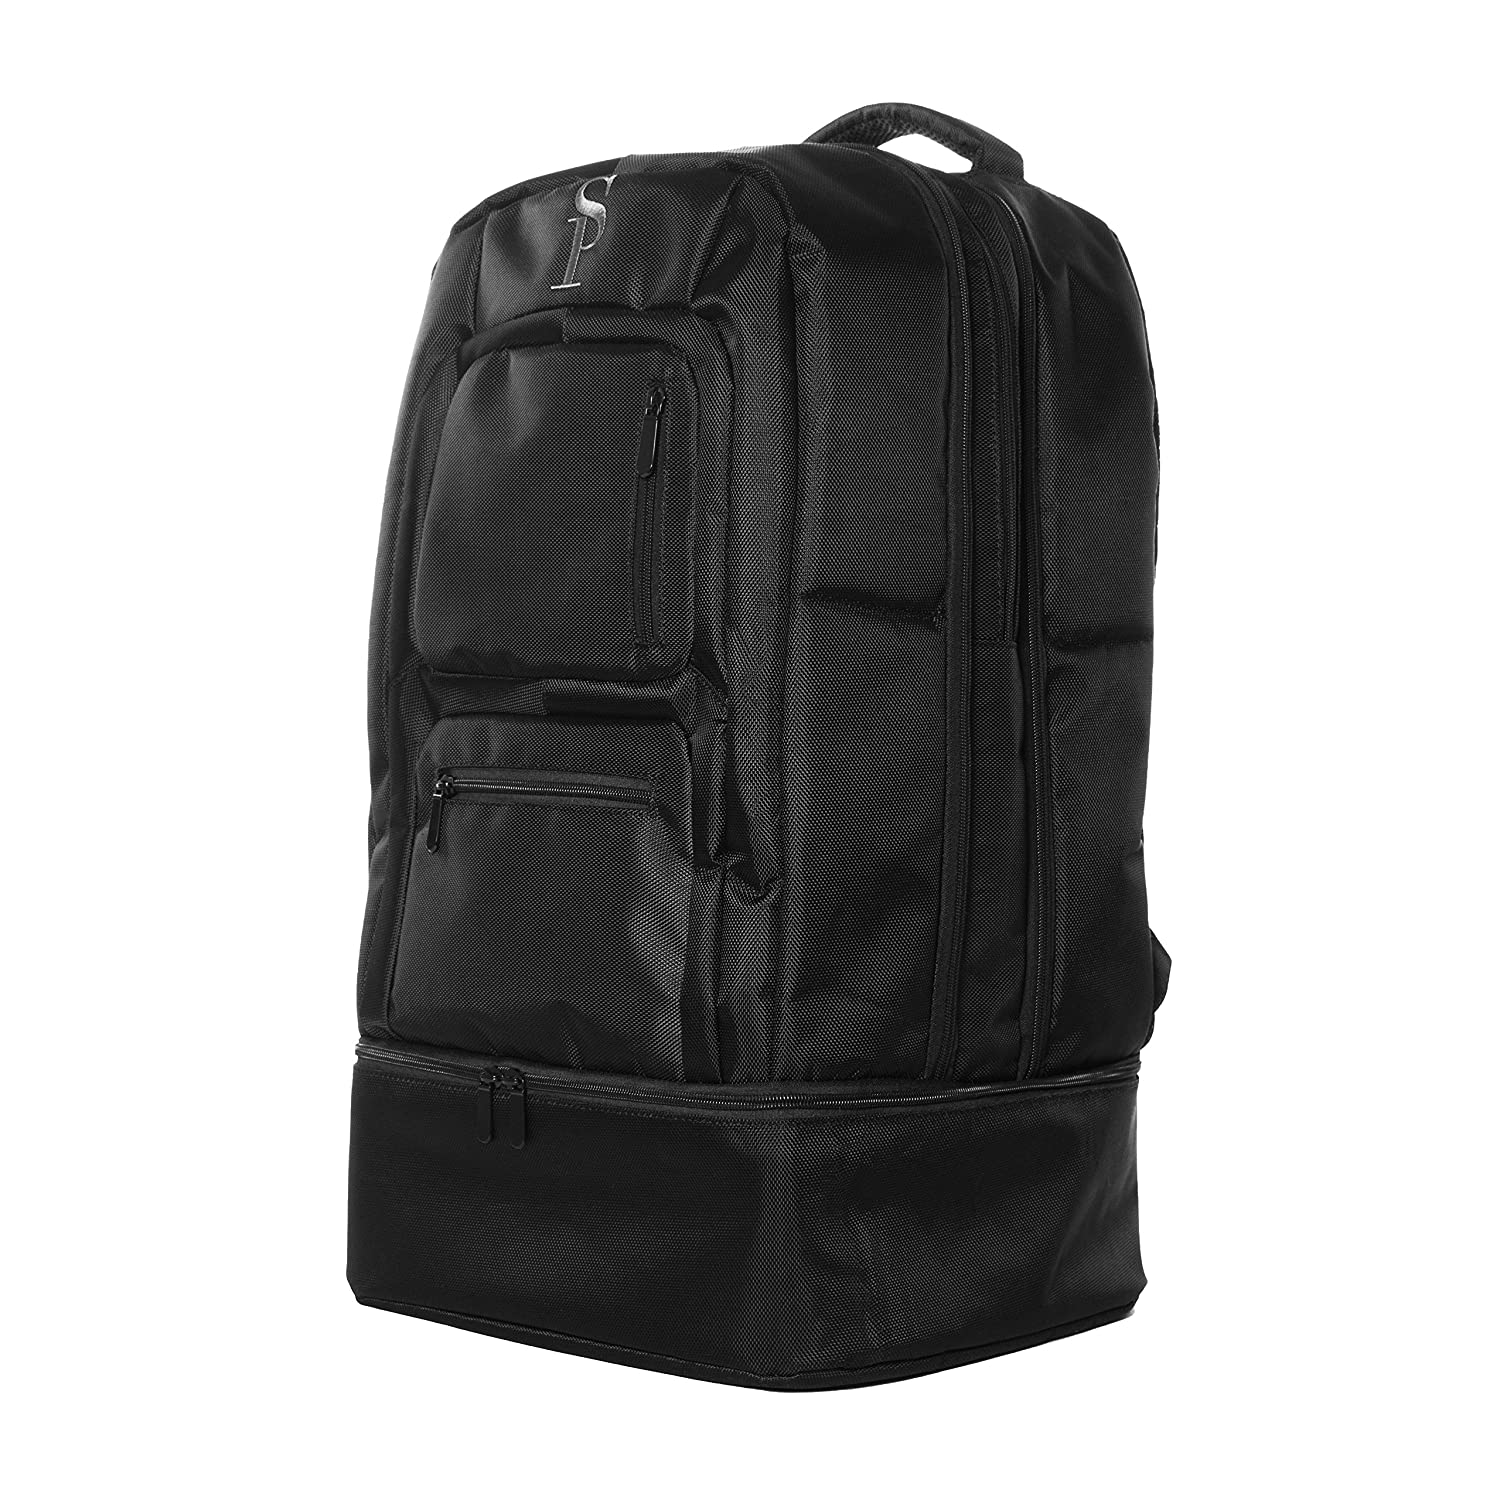 10afba9b5a Amazon.com  Sole Premise Laptop Shoe Carry-On Luggage Travel  Multi-functional Sneaker Backpack Bag for Men   Women Black  Sole Premise